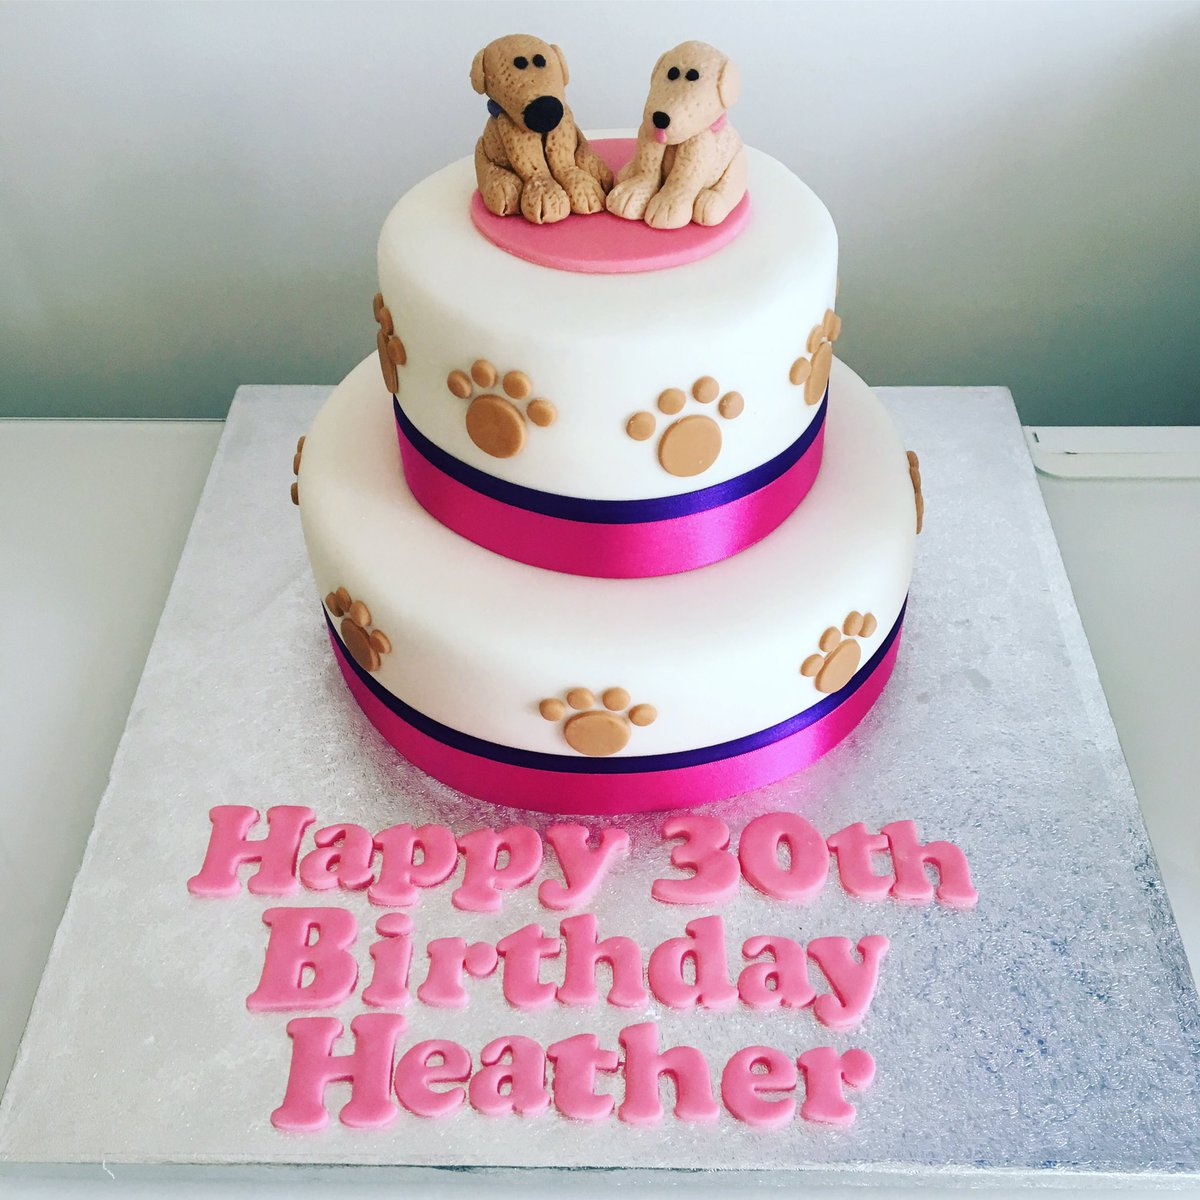 Cakes By Dominique On Twitter Dog Themed Birthday Cake Warrington Cakestoorder Stocktonheath